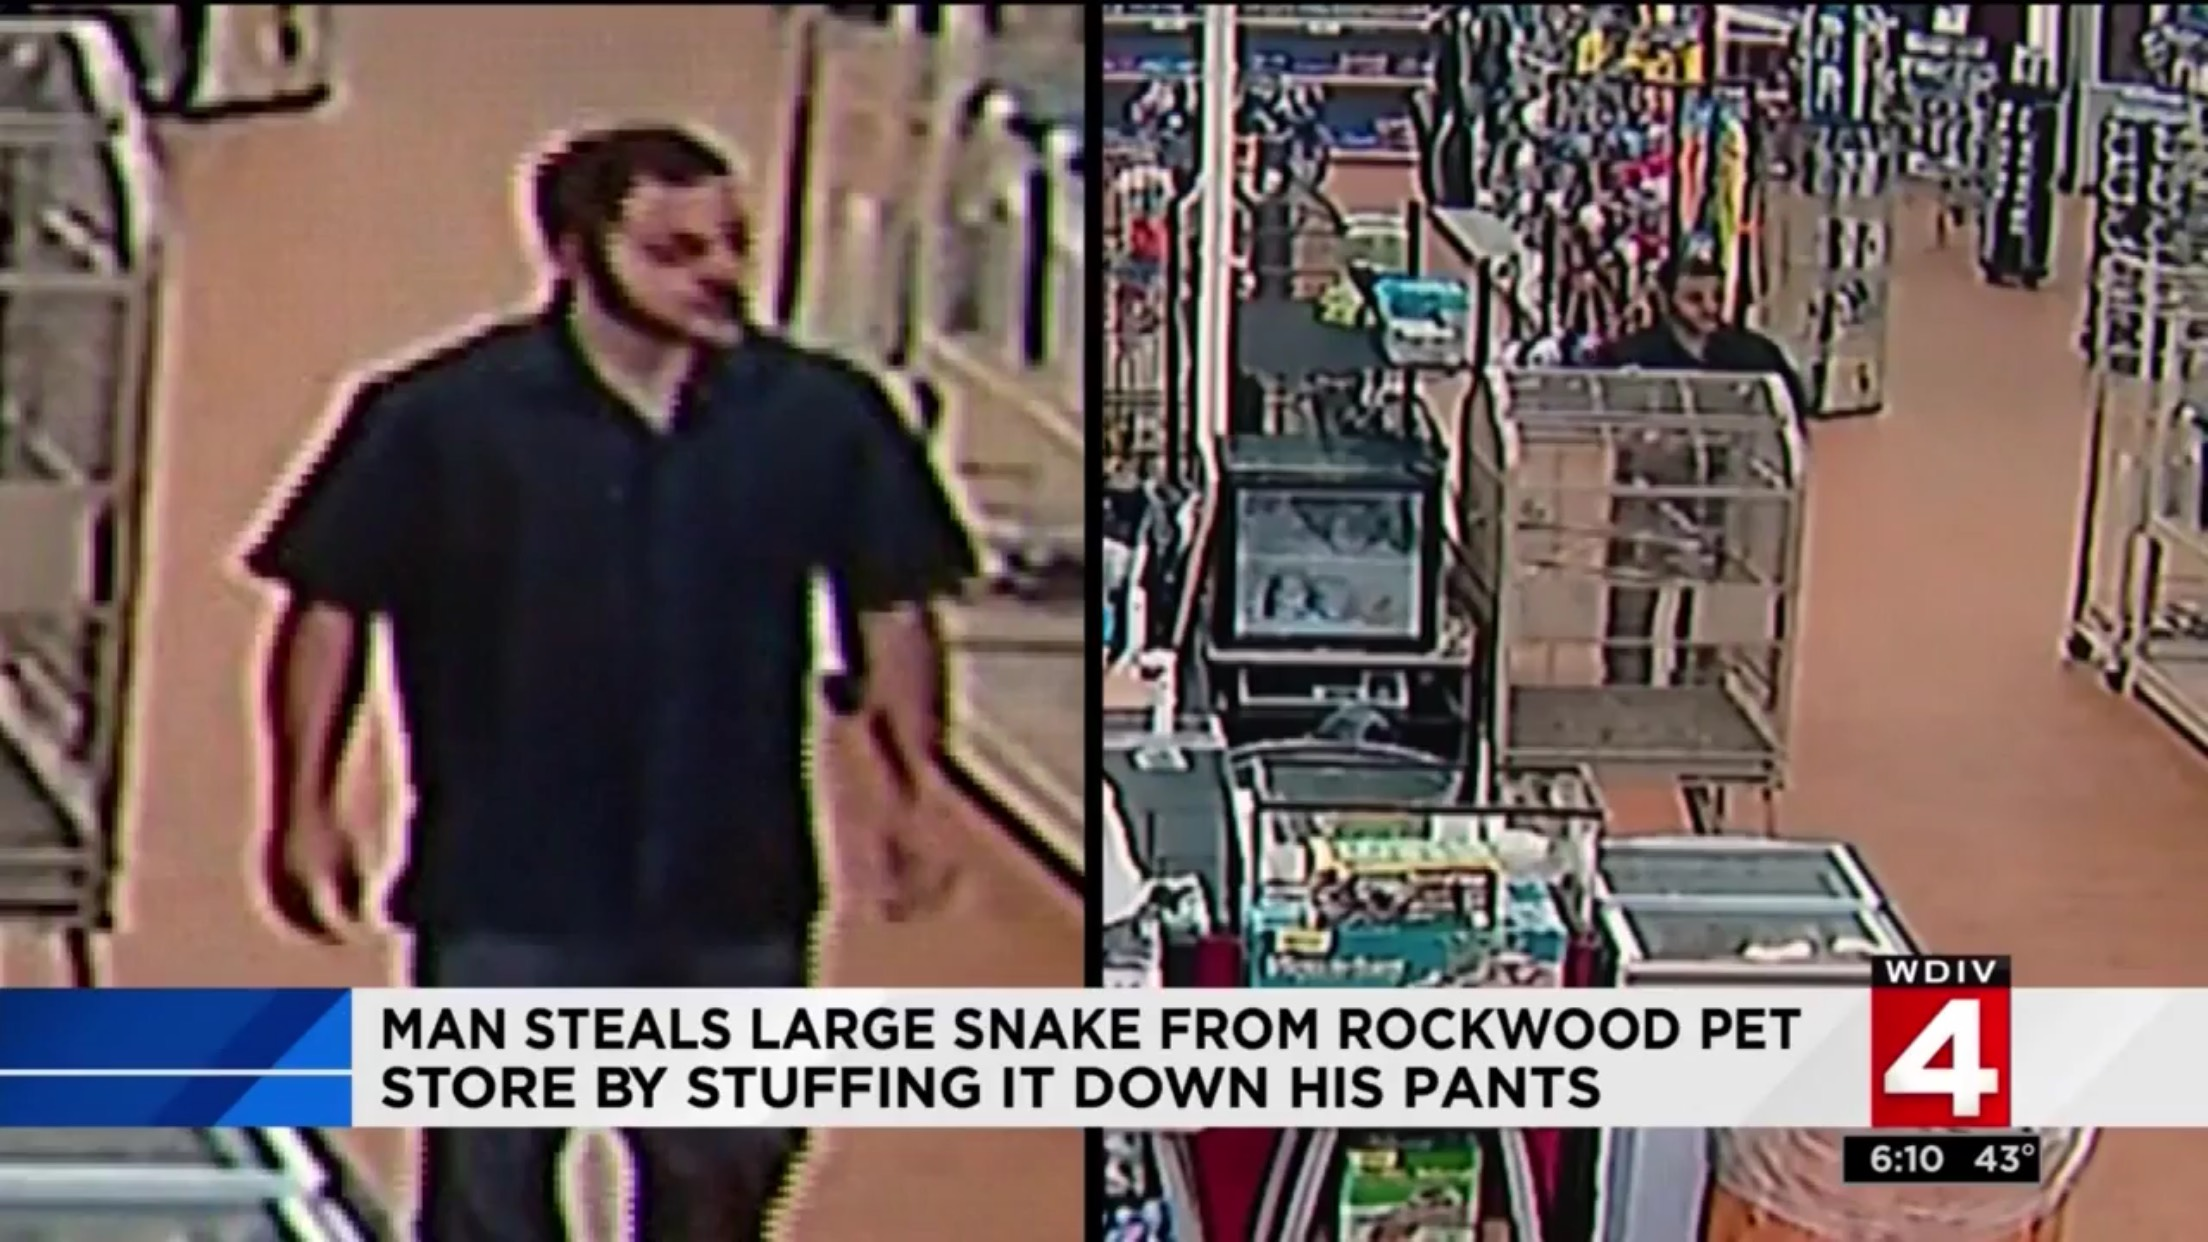 Man Steals Large Snake From Rockwood Pet Store By Stuffing It Down His Pants